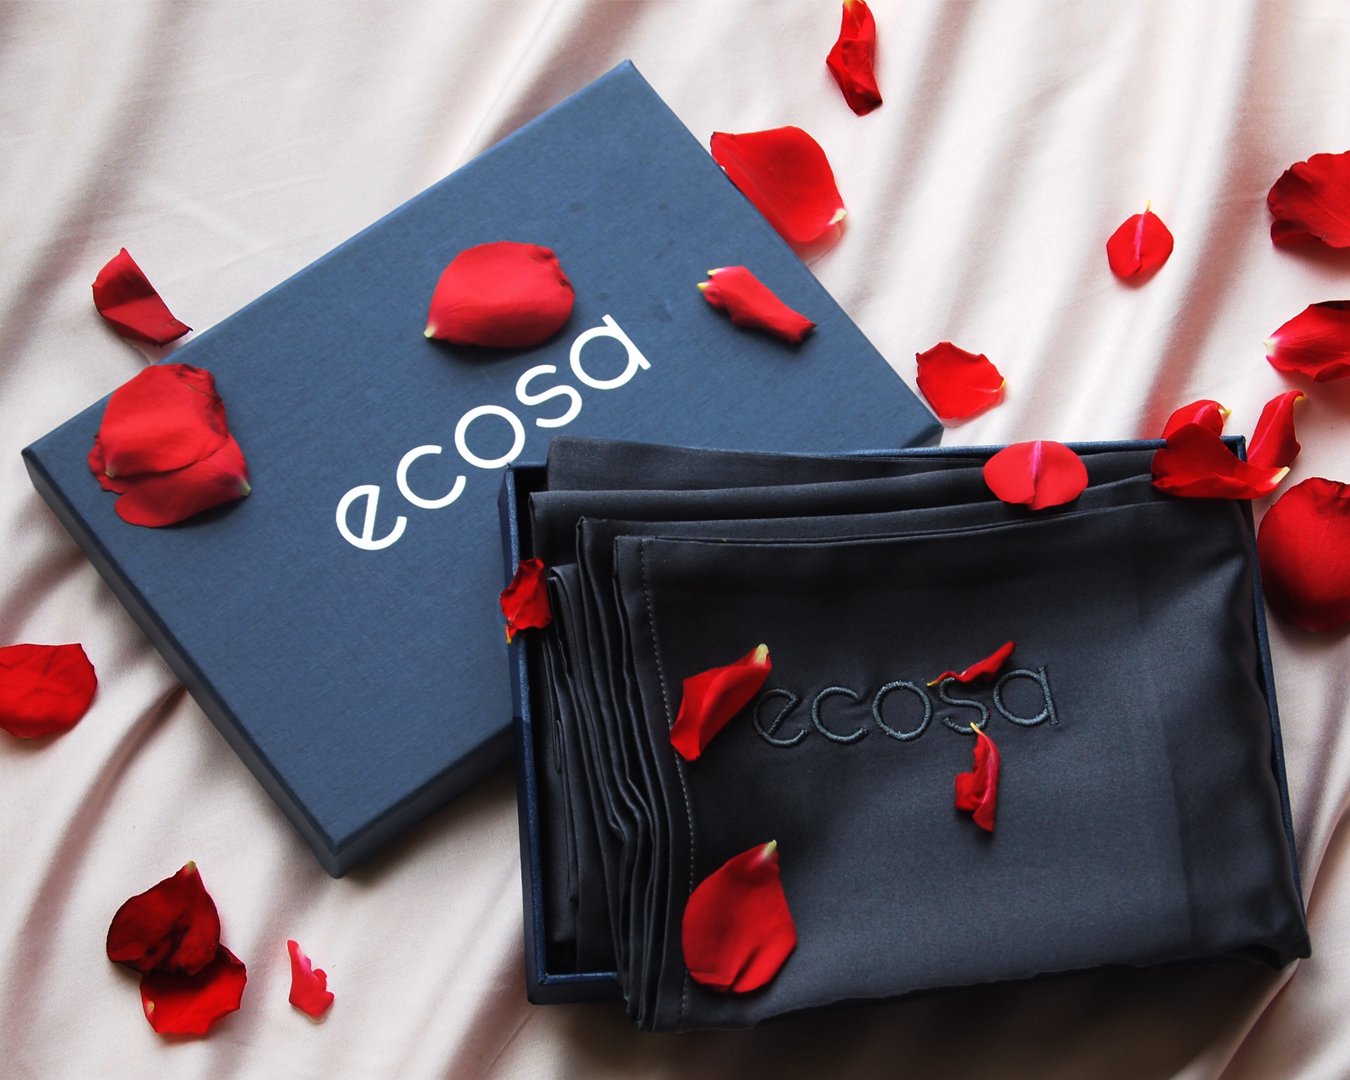 A black silk pillowcase from Acosa, covered in a scattering of rose petals